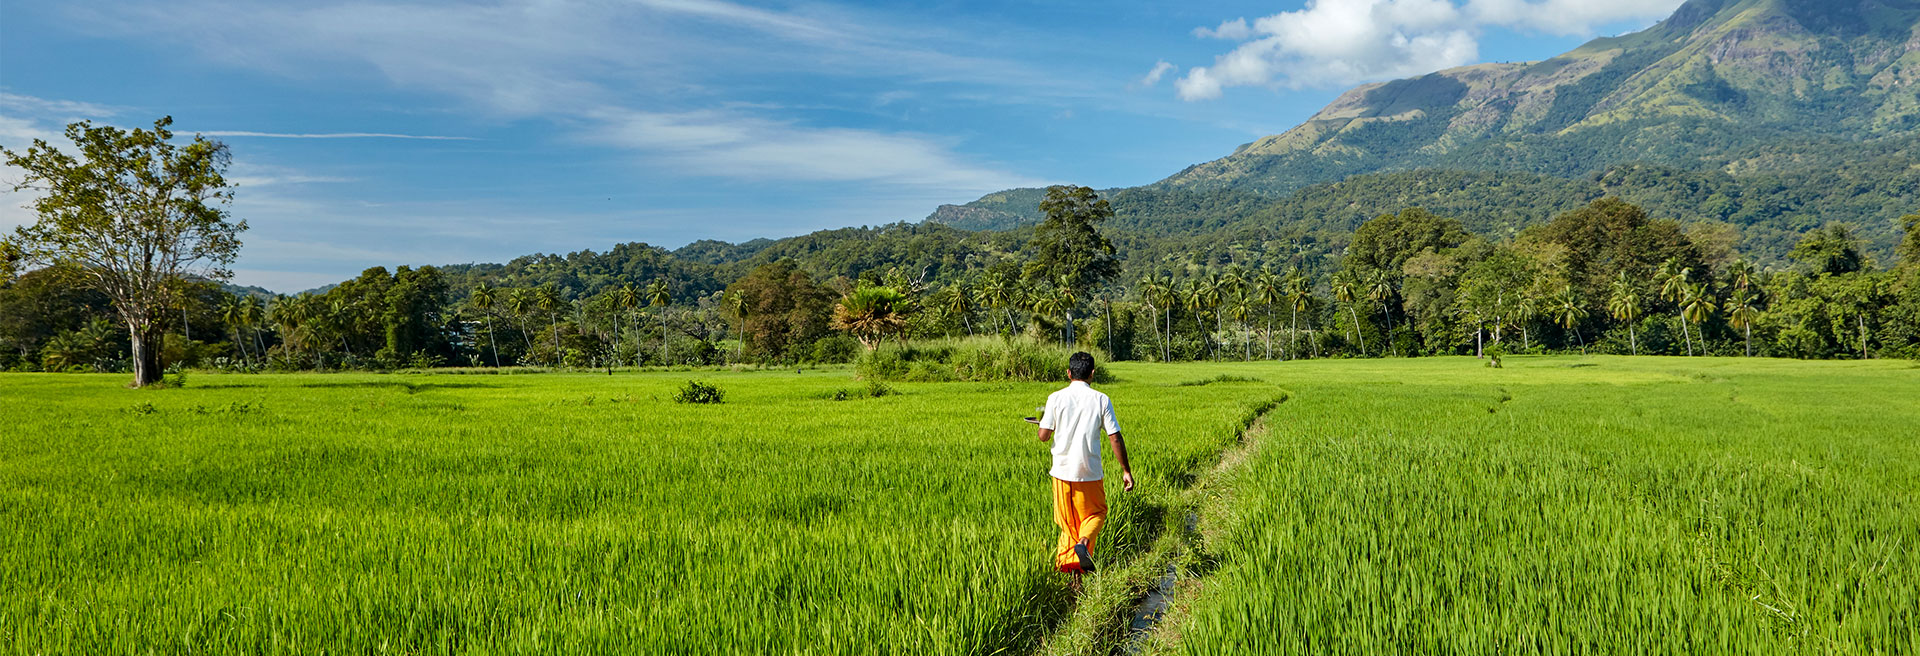 Man Walking Through A Paddy Field